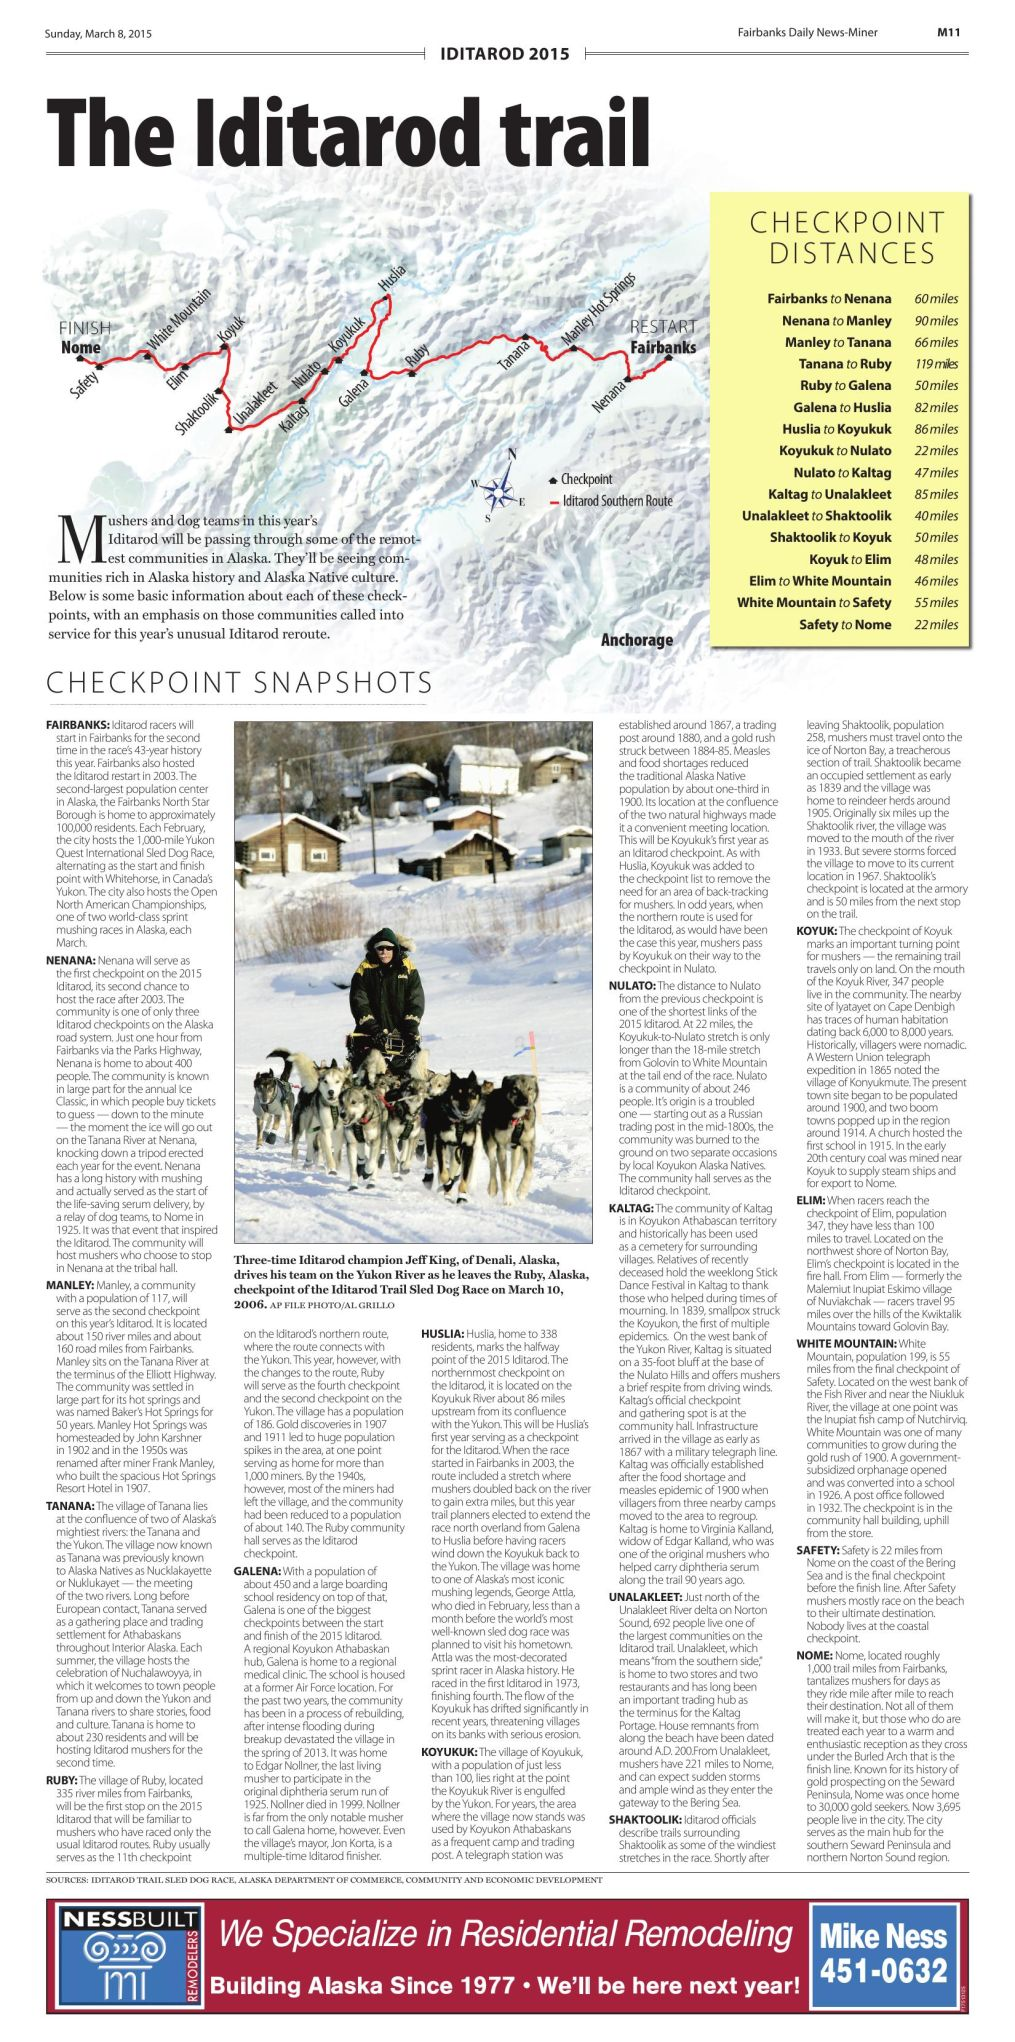 Iditarod map and checkpoint info